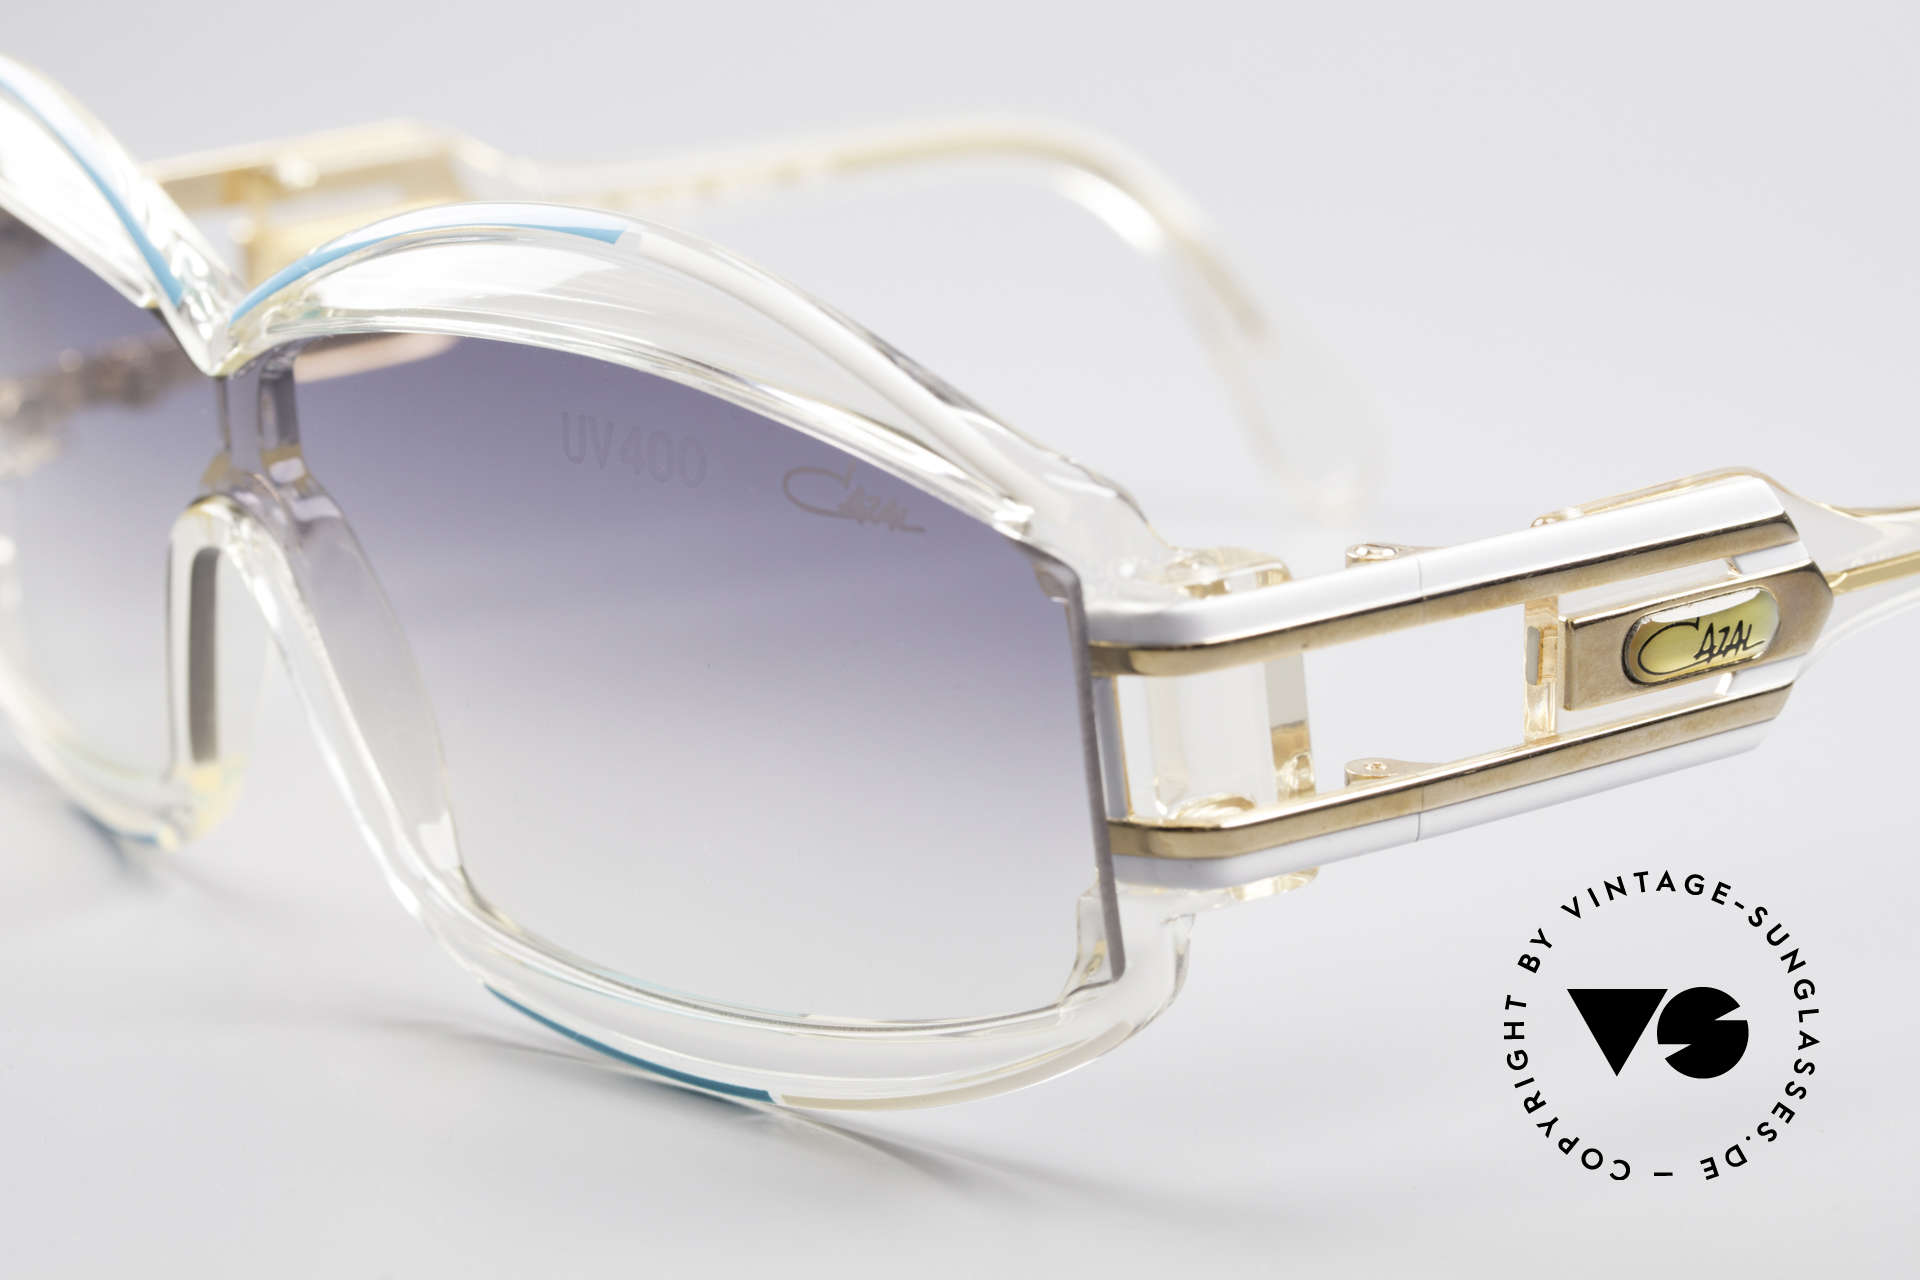 Cazal 857 True 80's Hip Hop Shades, just a true eye-catcher - simply unique and glamorous, Made for Men and Women